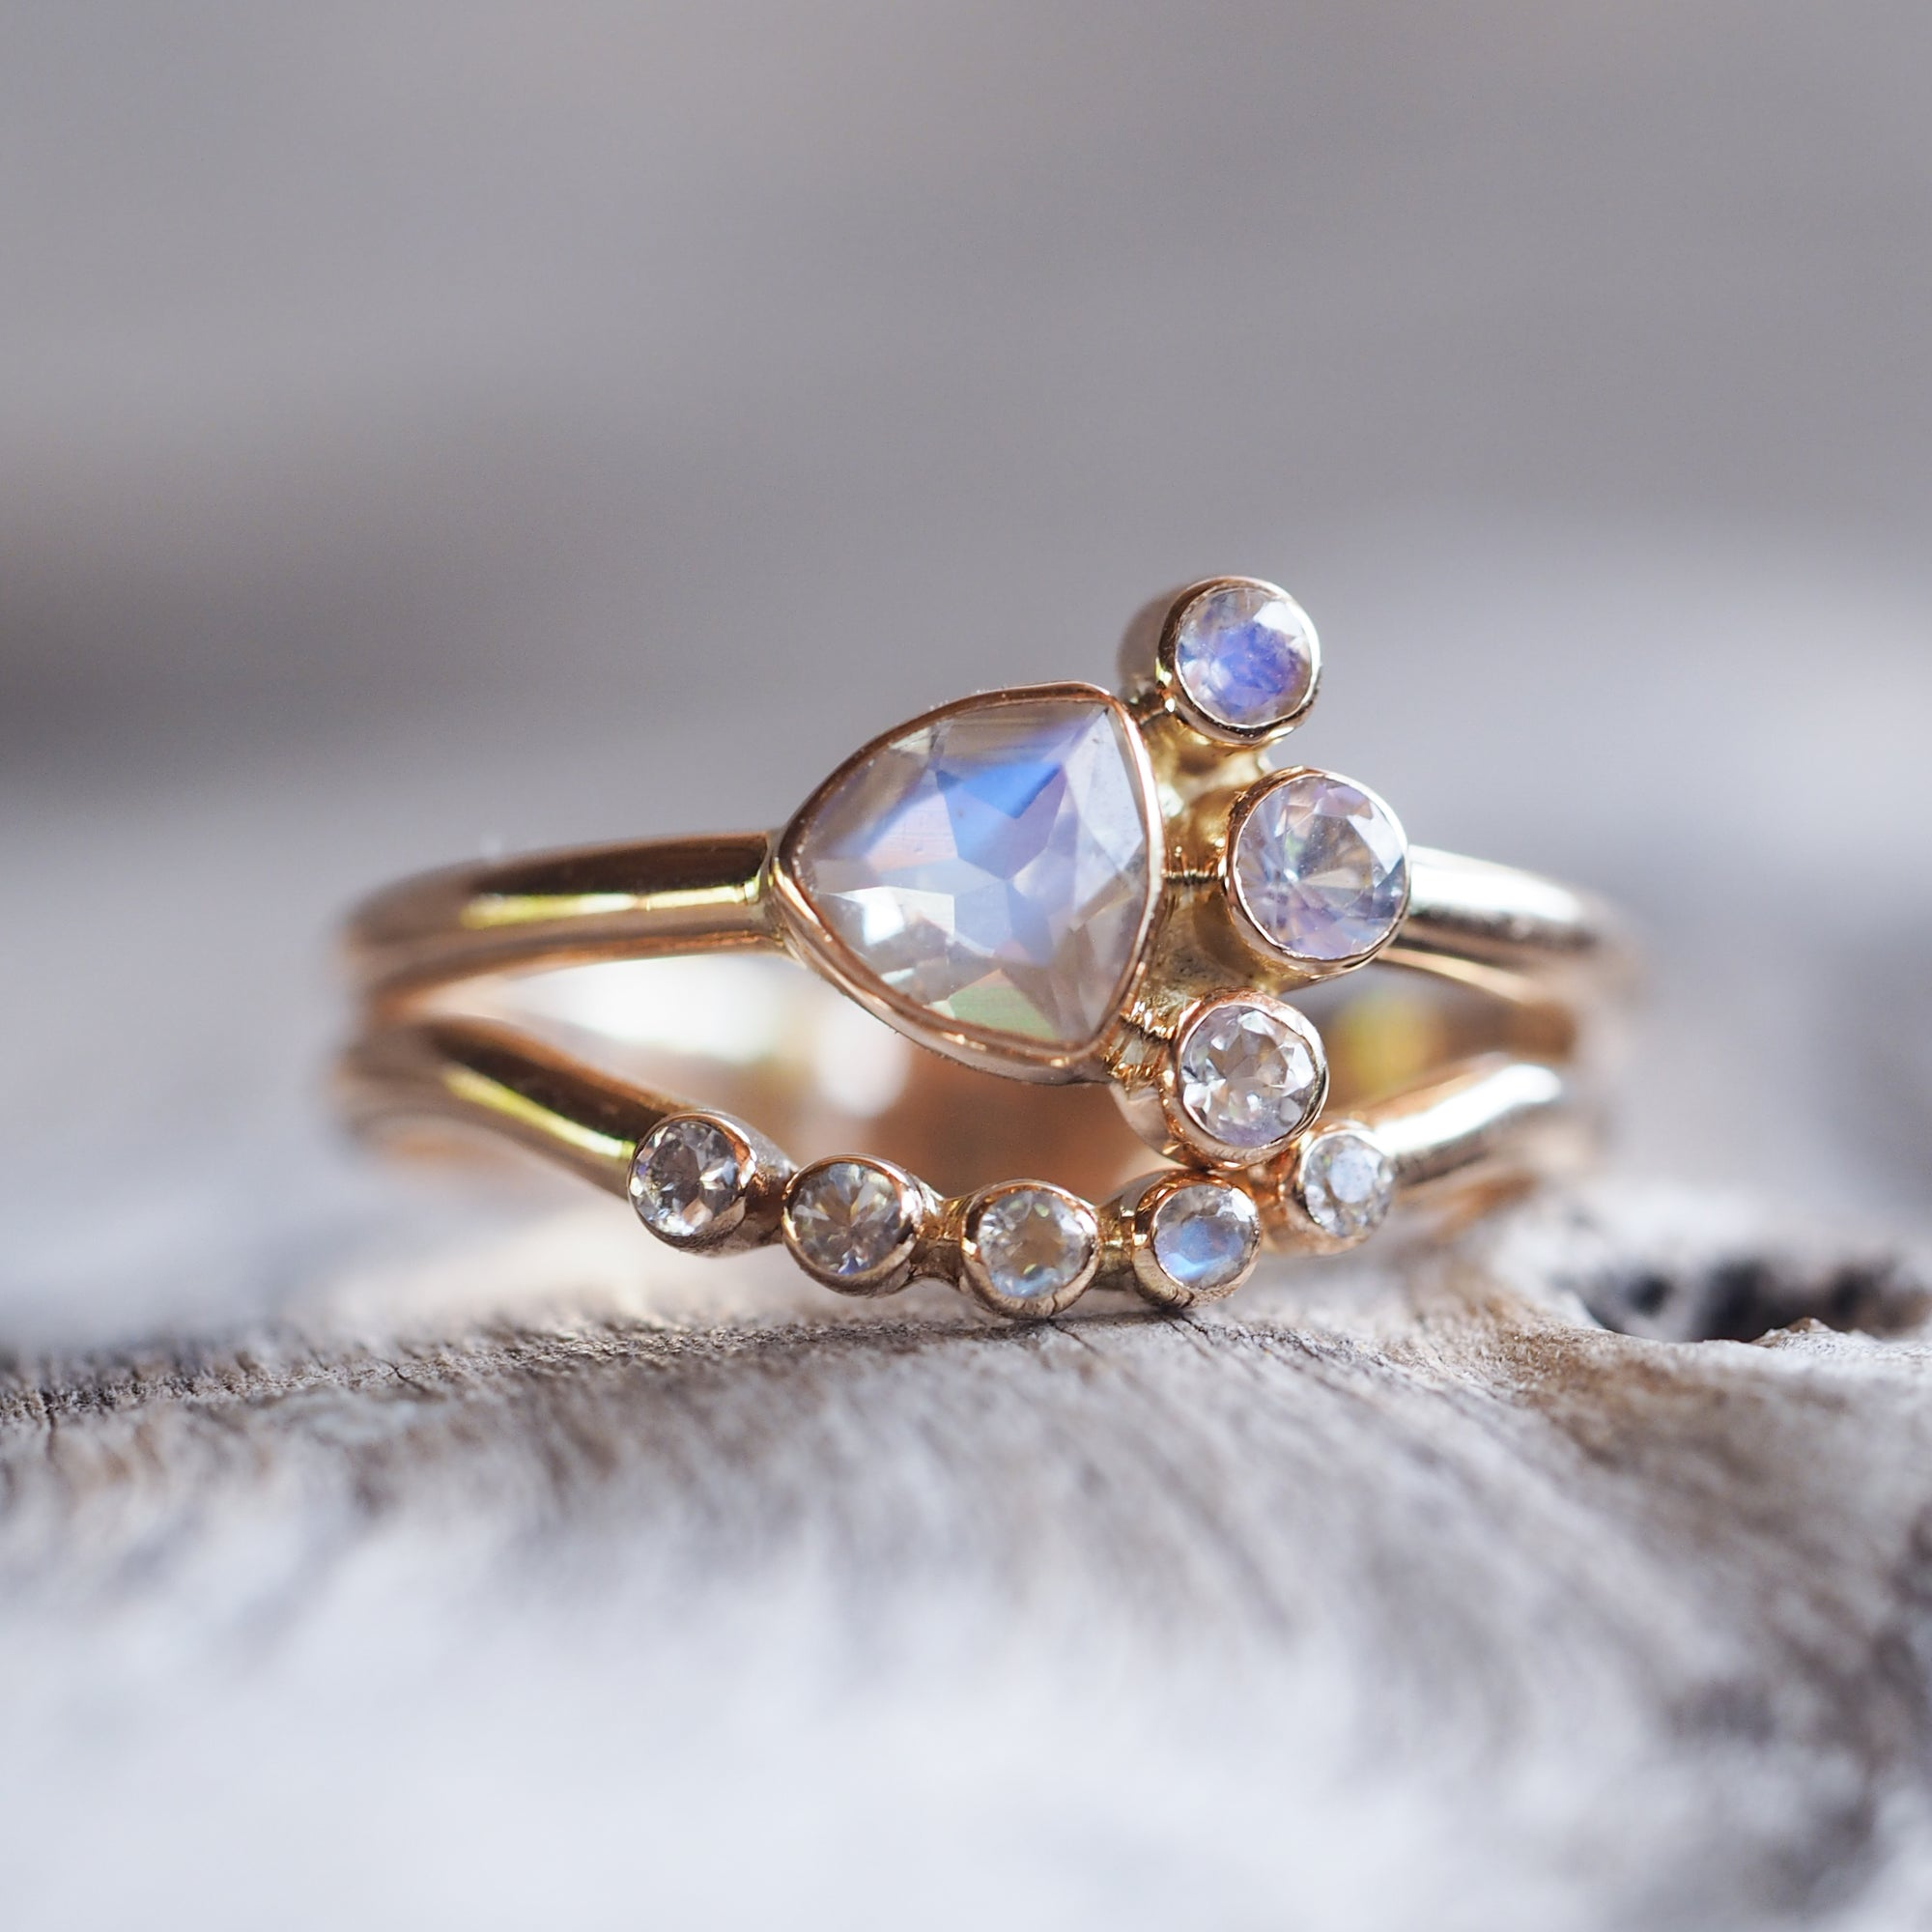 Rainbow Moonstone Ring Set in Rose Gold - Gardens of the Sun Jewelry